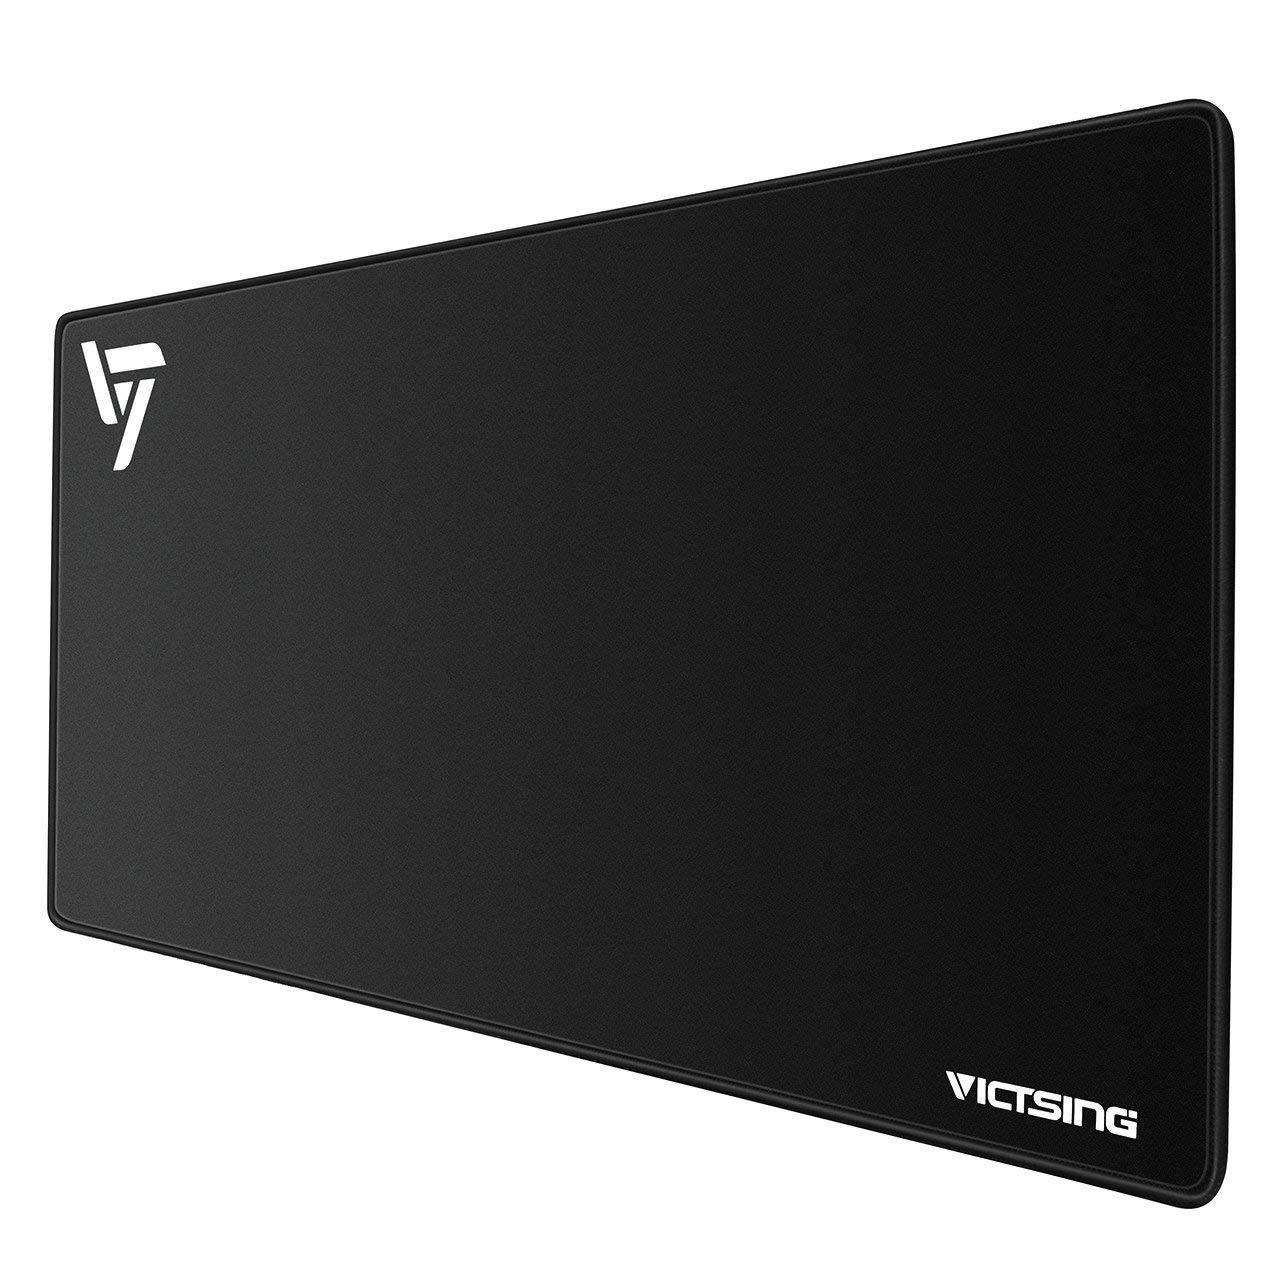 best rated computer keyboards mice accessories helpful tablet accent eagle victsing extended gaming mouse pad thick large inch keyboard mousepad mat water resistant non slip base